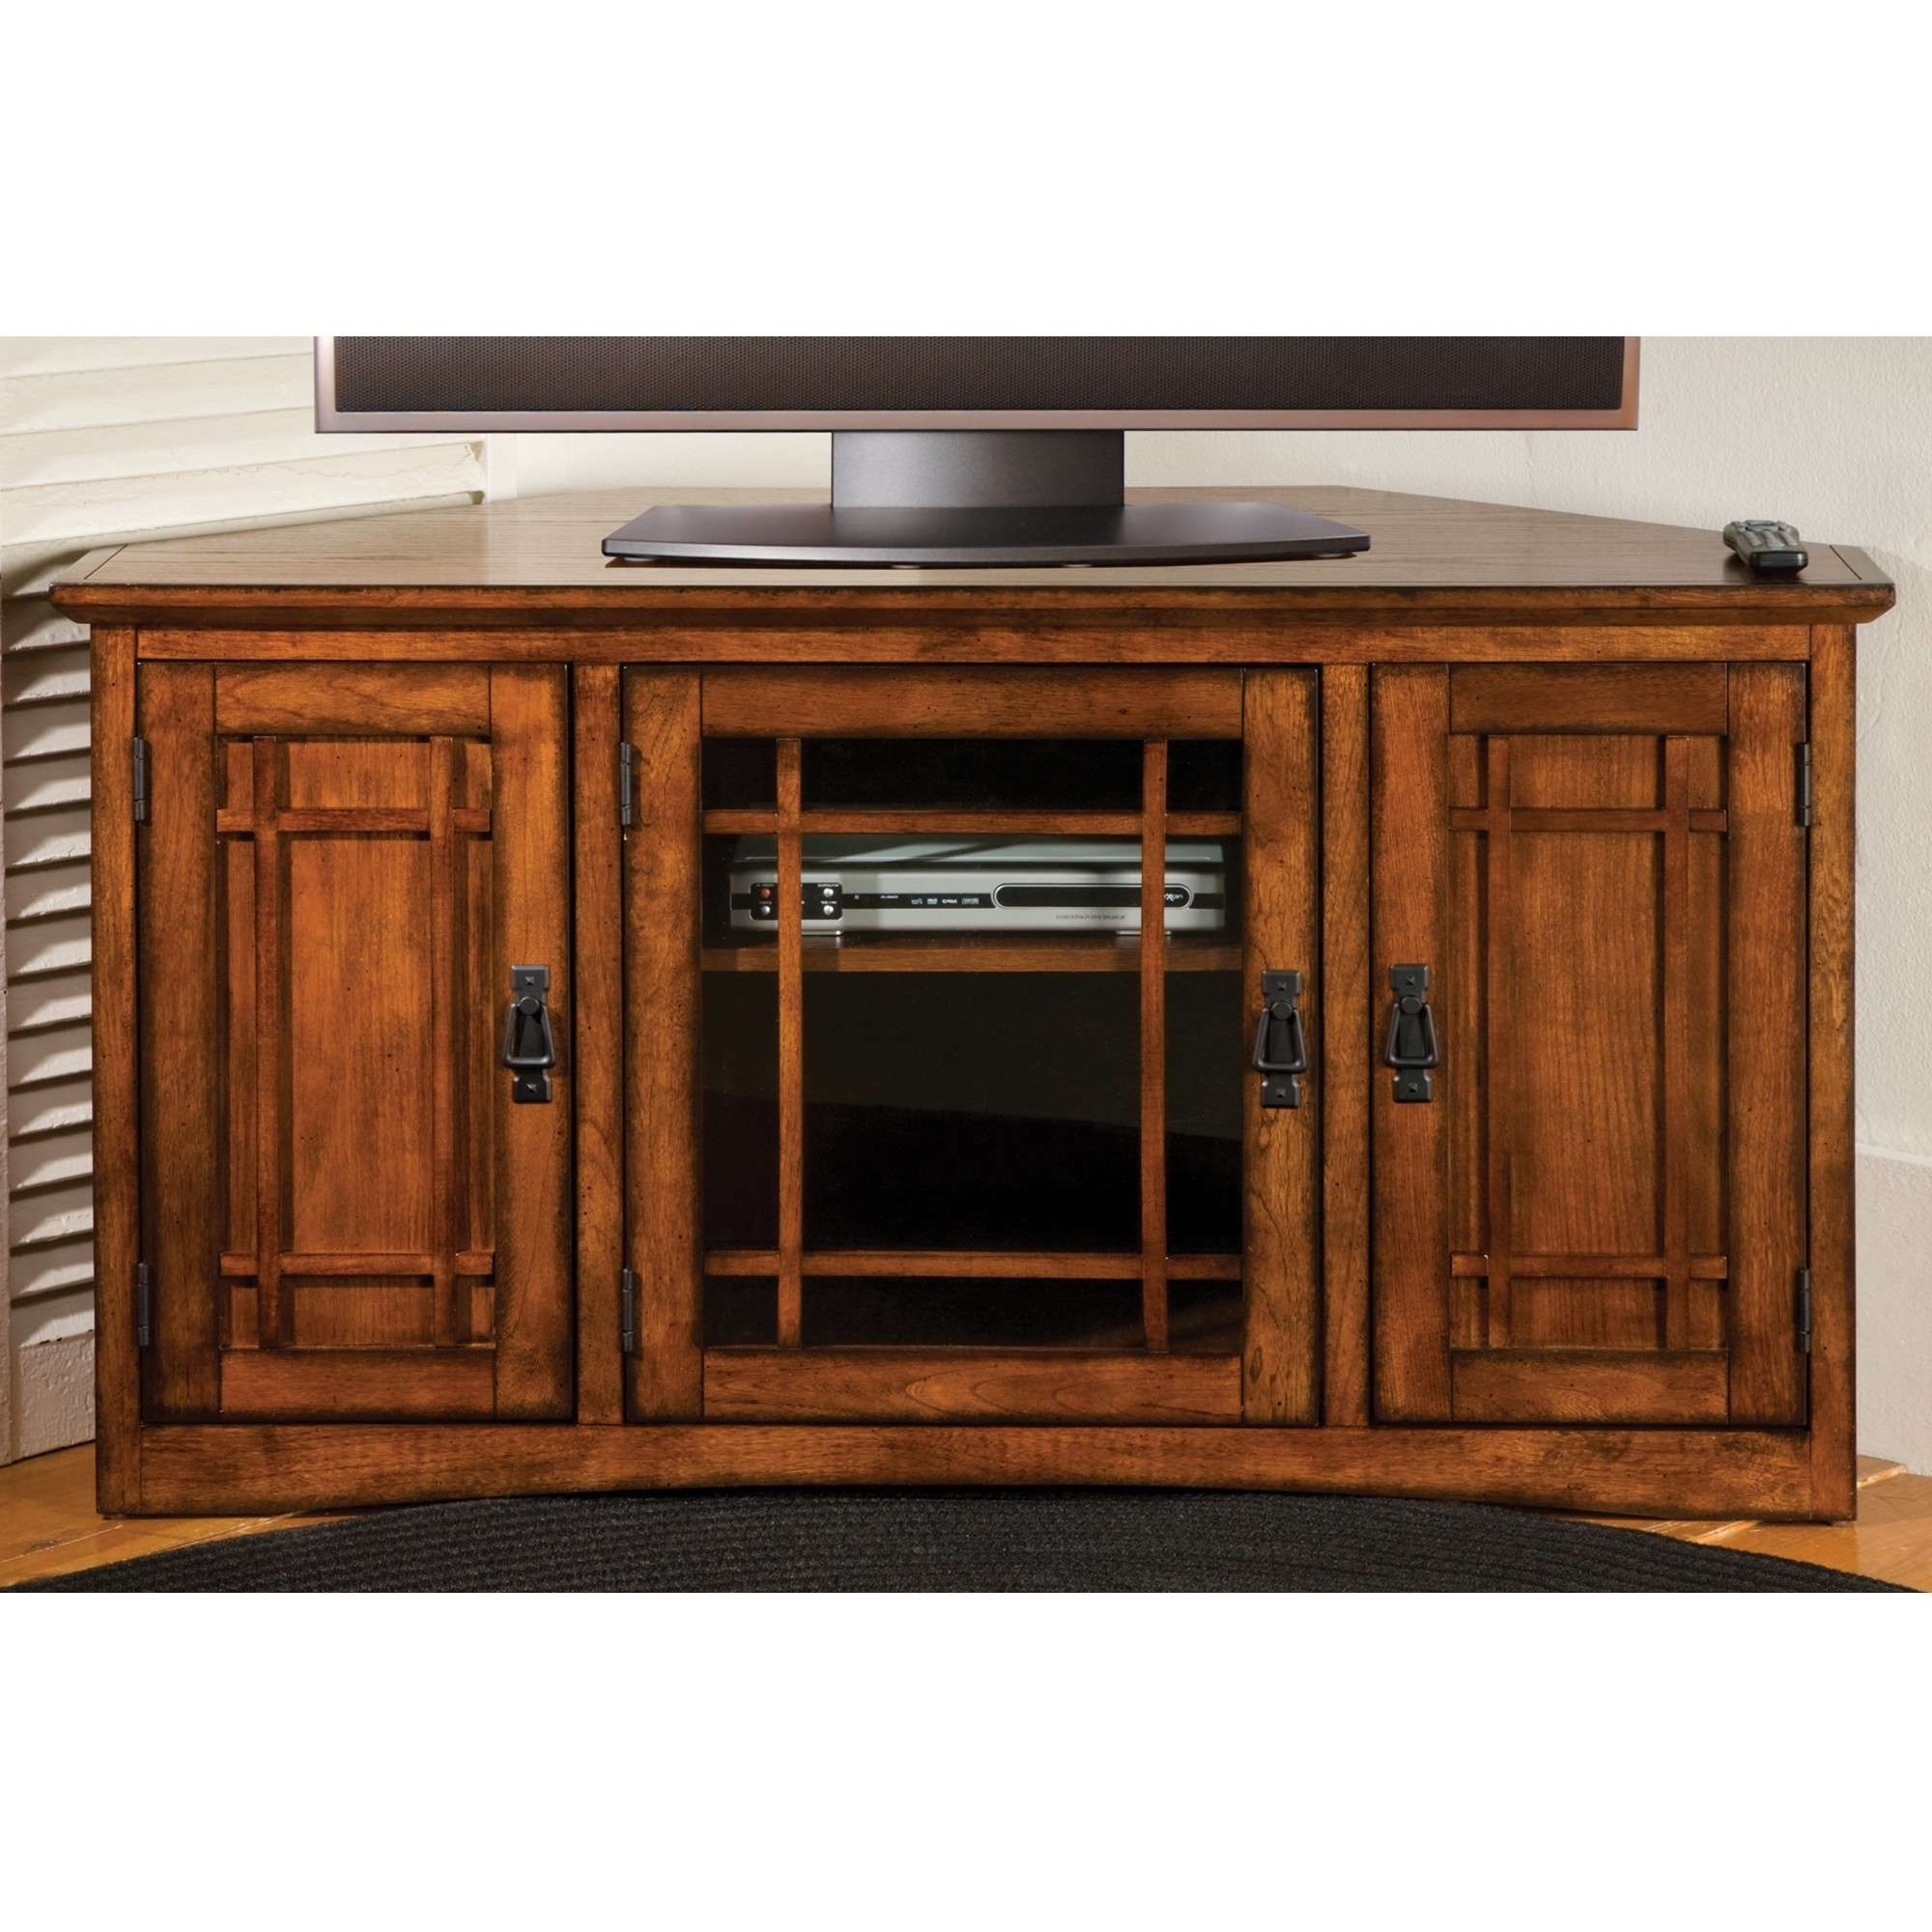 Flat Screen Tv Corner Cabinets With Doors • Cabinet Doors Inside Corner Tv Cabinets For Flat Screen (View 11 of 20)